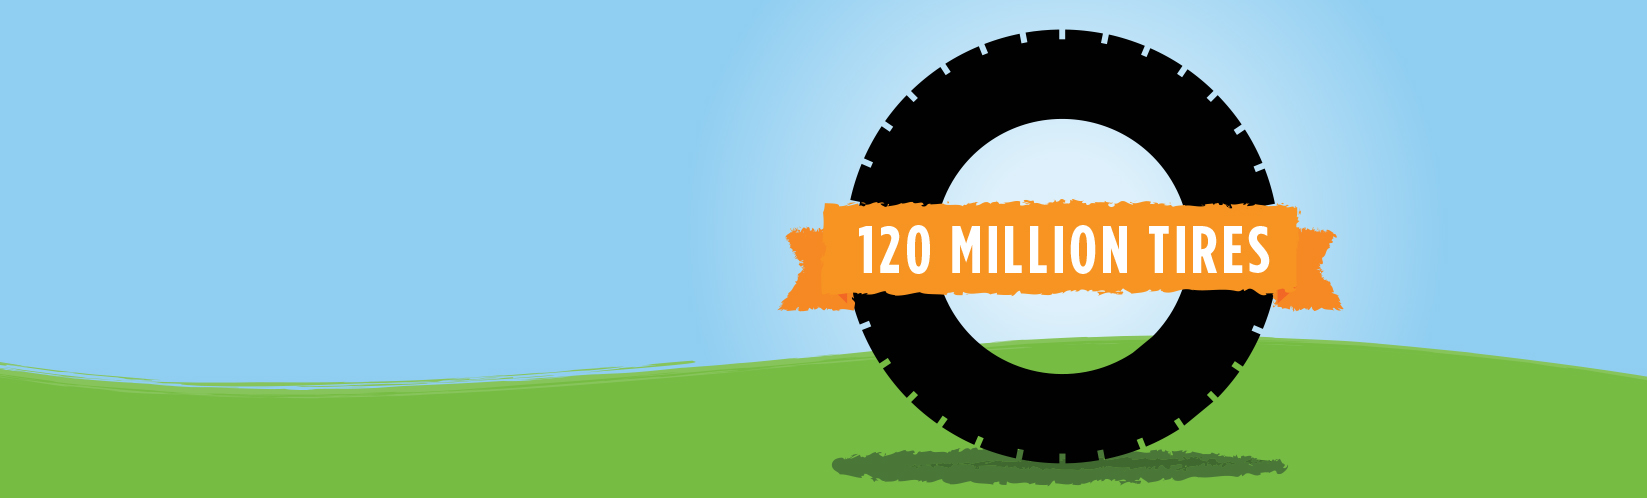 TIME TO CELEBRATE!<BR>WITH YOUR HELP, WE'VE RECYCLED 120 MILLION TIRES